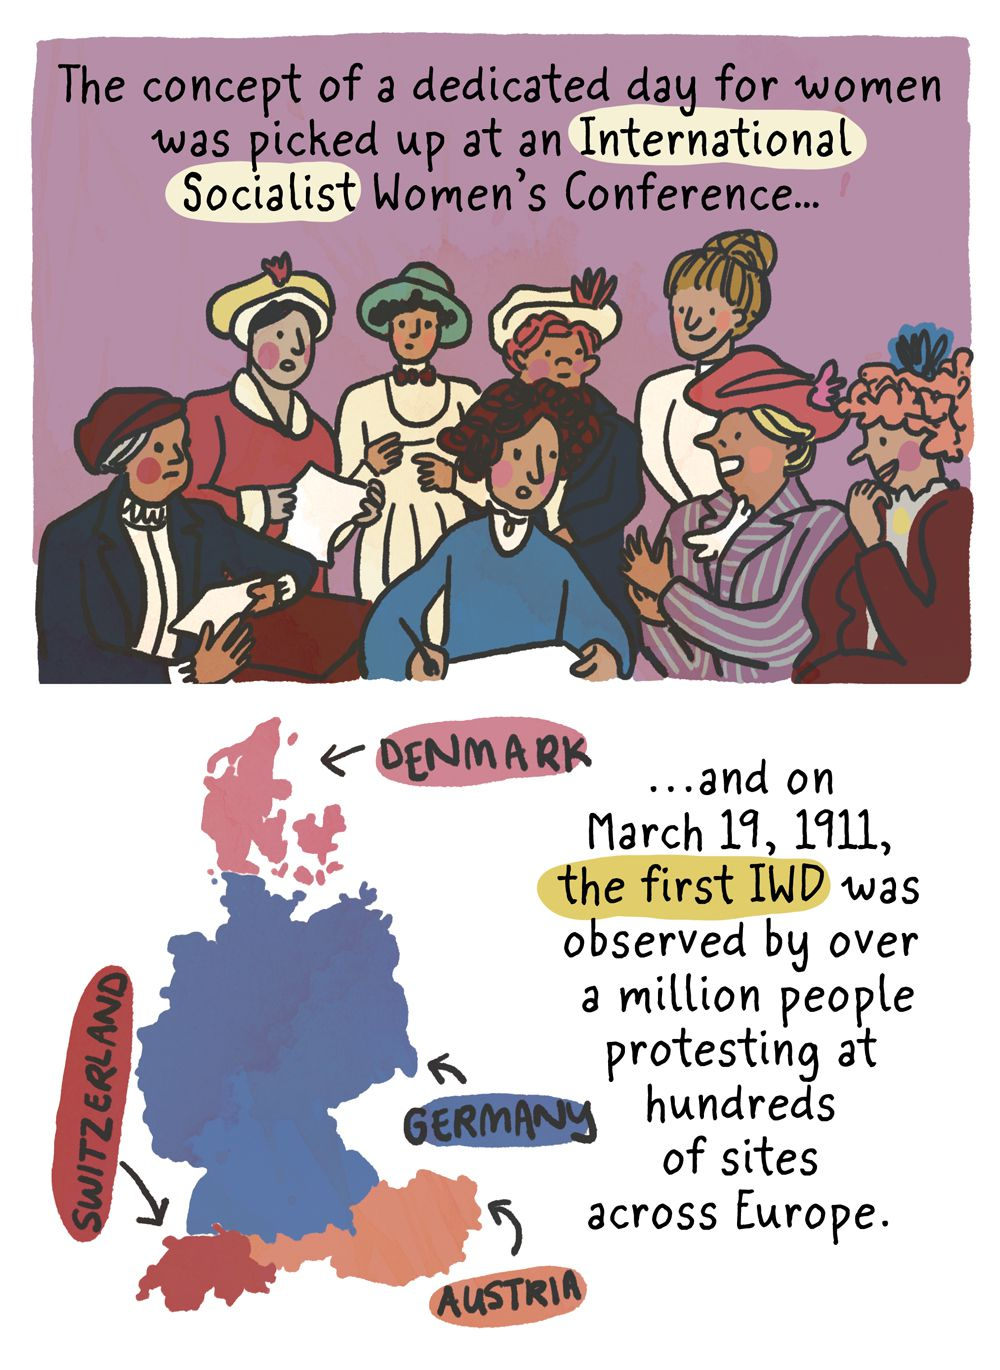 The concept of a dedicated day for women was picked up at an International Socialist Women's Conference, and on March 19, 1911, the first International Women's Day was observed by more than a million people protesting at hundreds of sites across Europe.